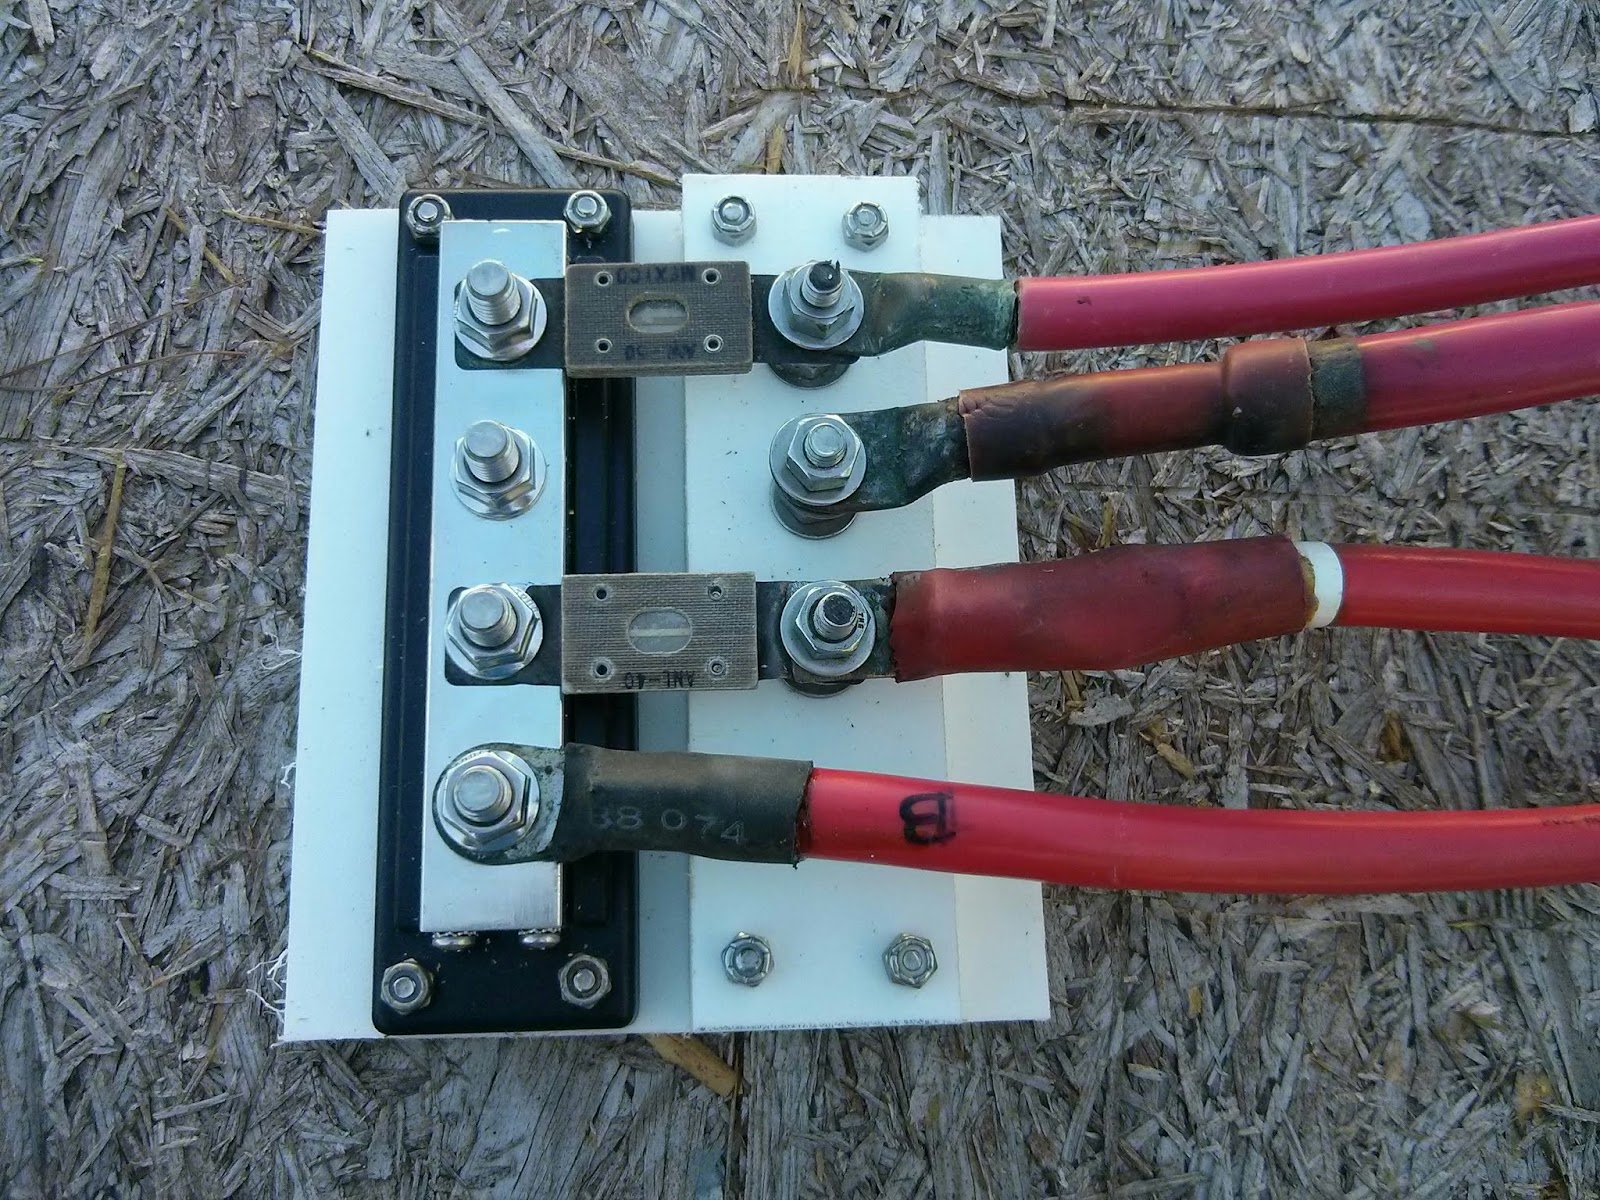 Mock up of wiring attached to fuse block (still missing one fuse.